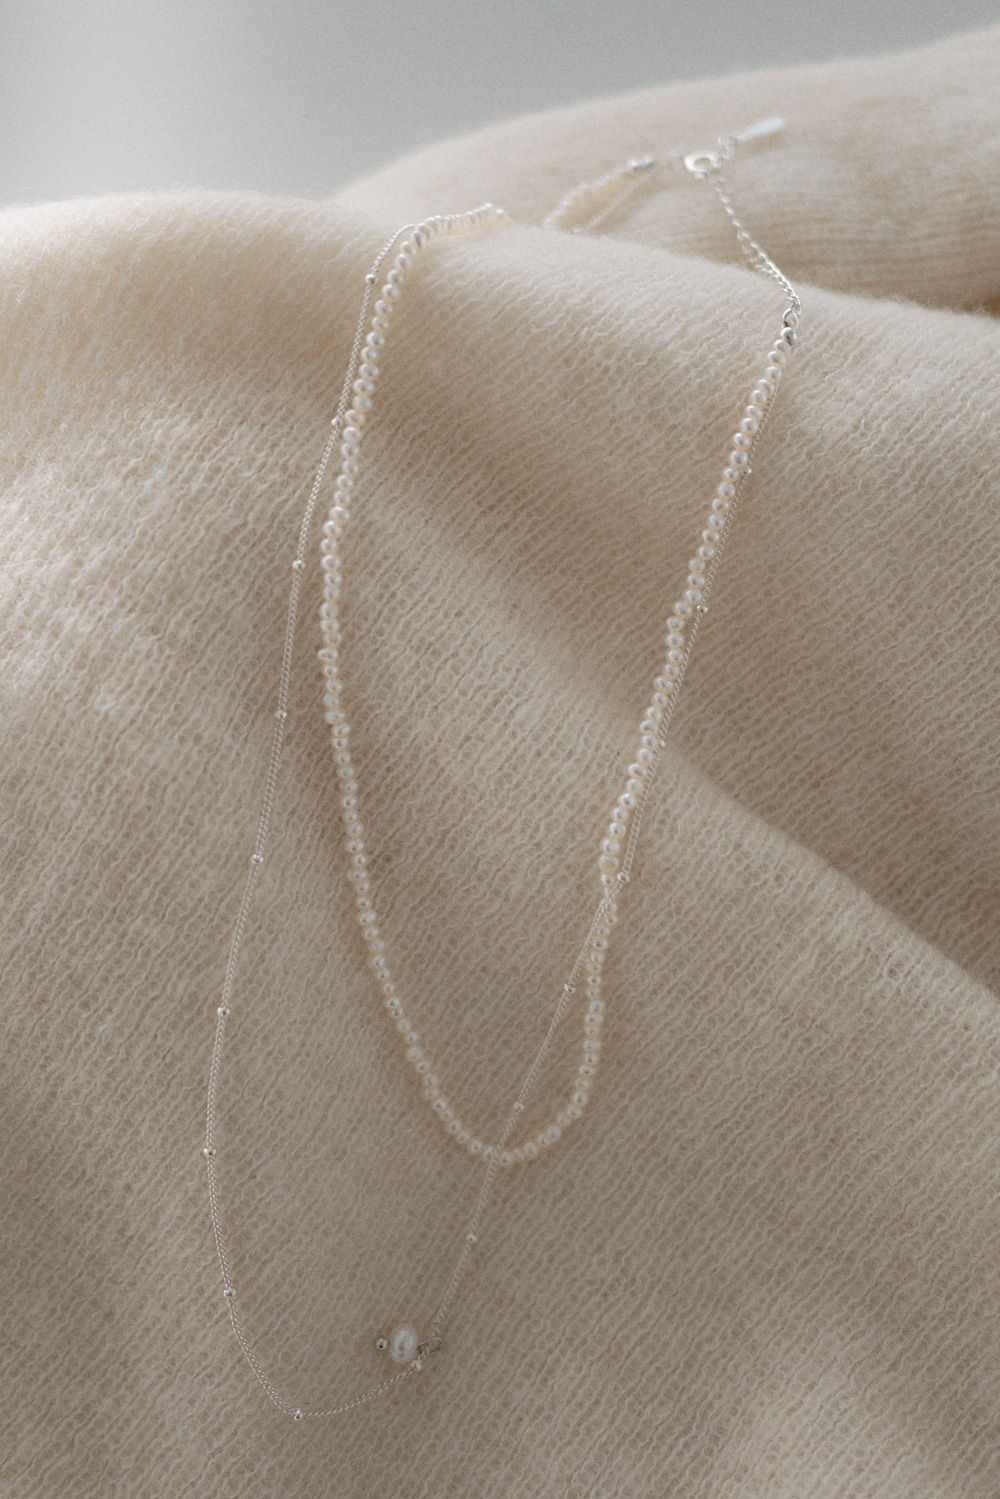 4905_Natural Pearl Necklace [ New Season / 10% DC ] 24일 PM 6 마감